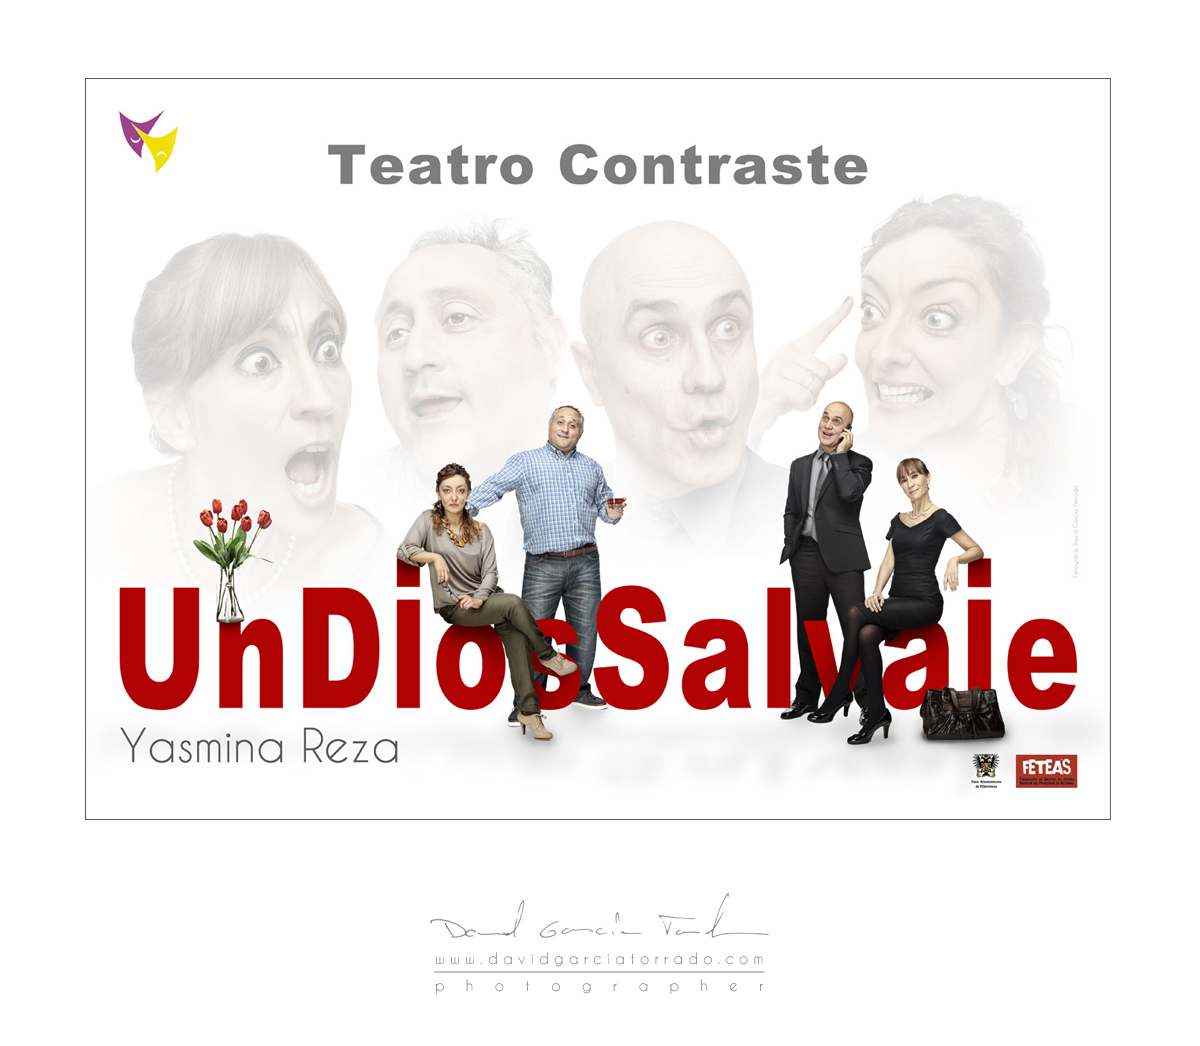 Teatro Contraste Villaviciosa _ David Garcia Torrado International photographer Asturias Madrid Munich advertising Work